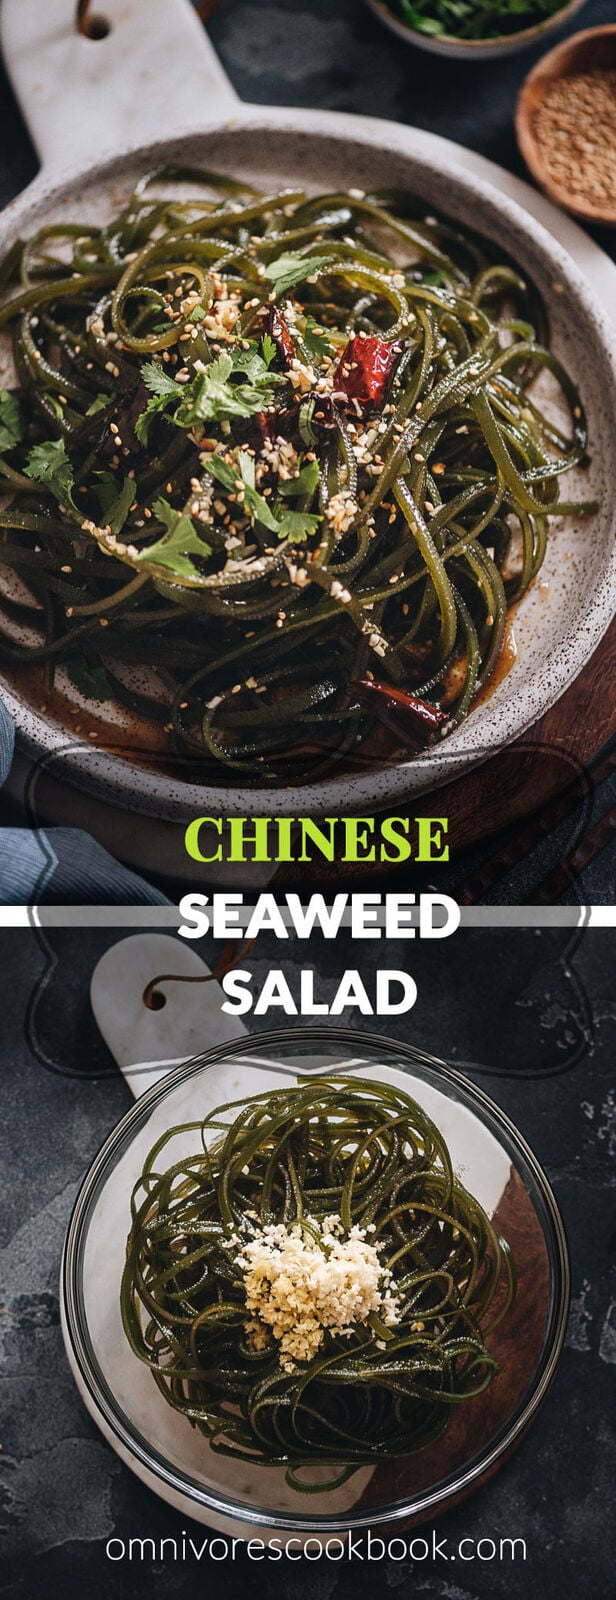 Chinese Seaweed Salad - Tender meaty seaweed salad served in a savory, sour, and garlicky sauce. It's very easy to make and is a perfect cold appetizer to add nutrition to your meal in the summer. {Vegan}